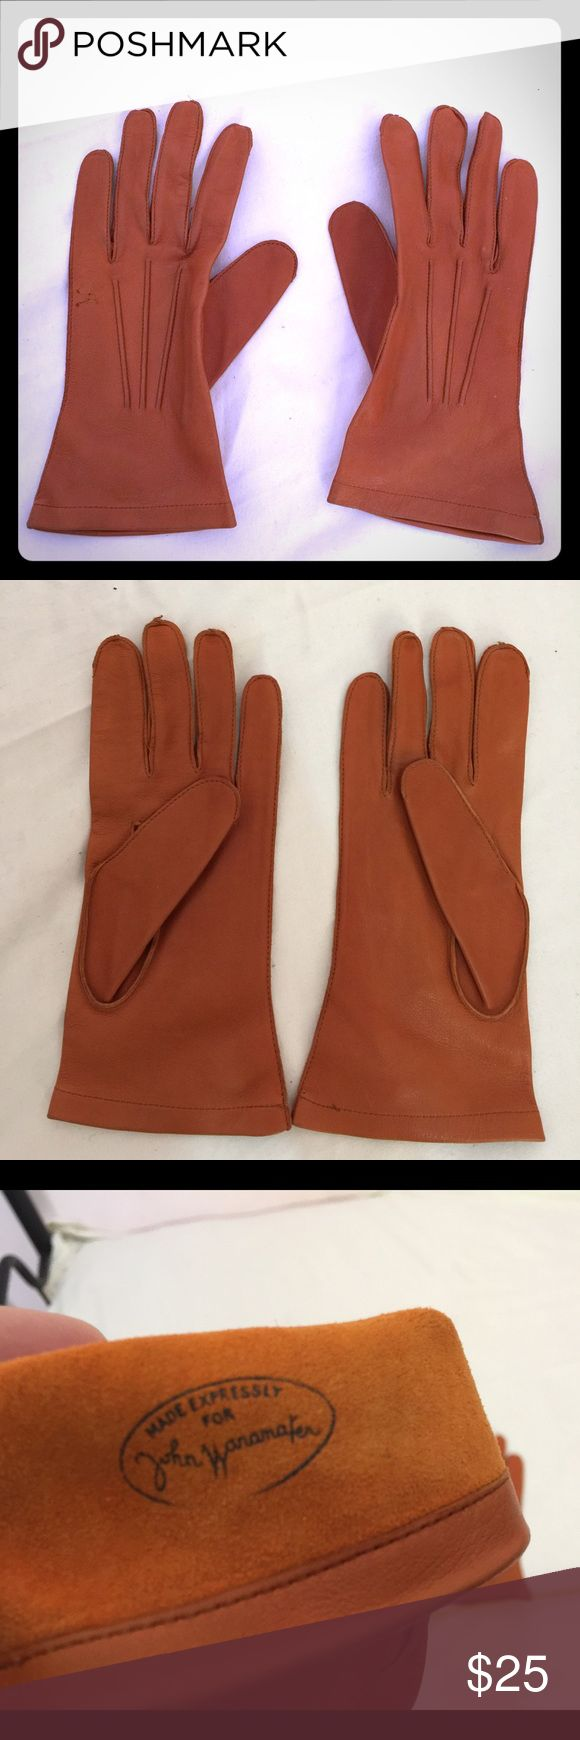 Ladies coloured leather gloves - Vintage Soft Brown Leather Gloves John Wanamaker Vintage Ladies Soft Brown Tan Leather Gloves Rare From